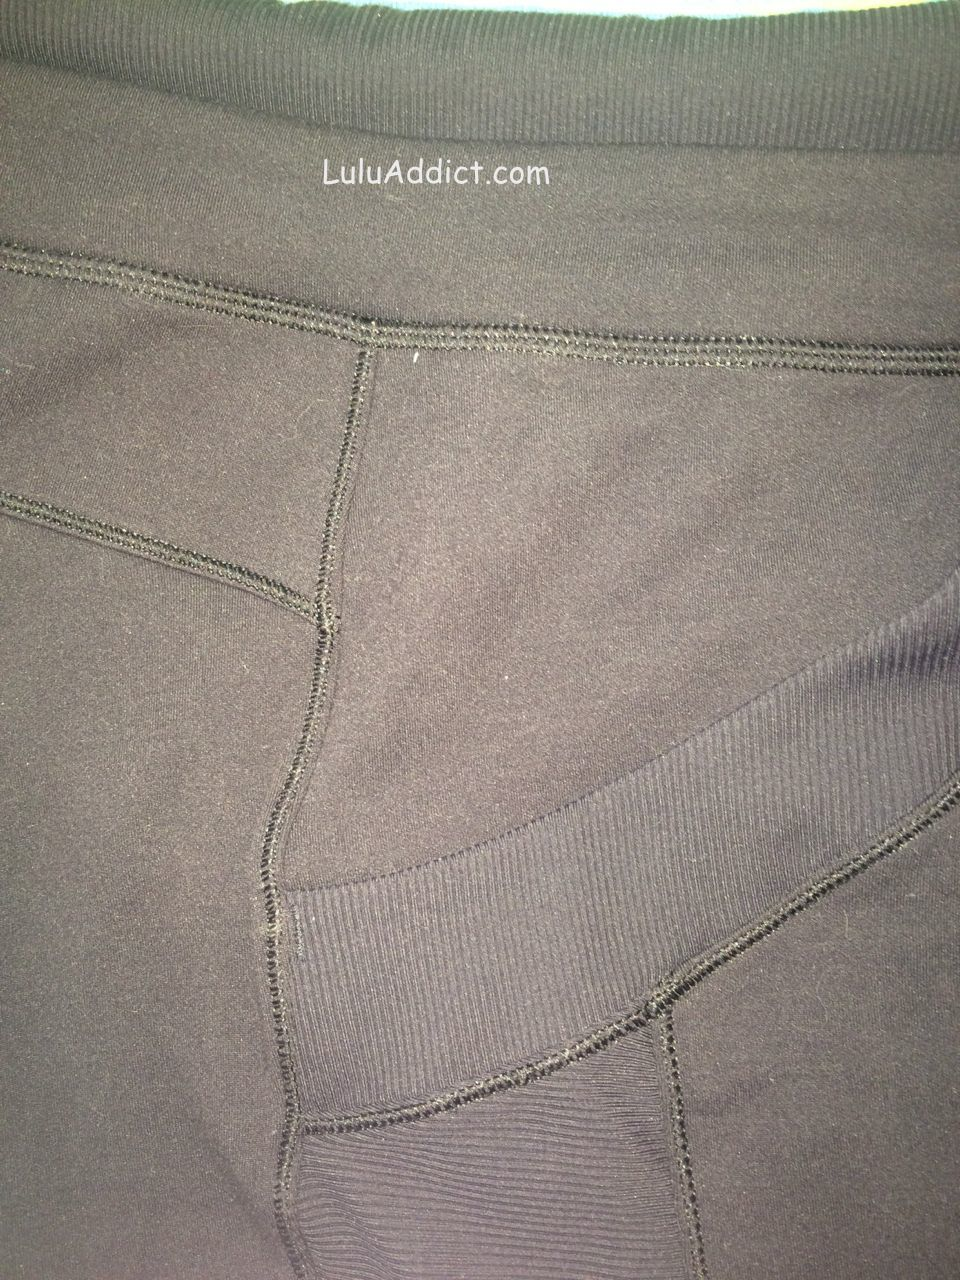 lululemon base runner pant 2013 version